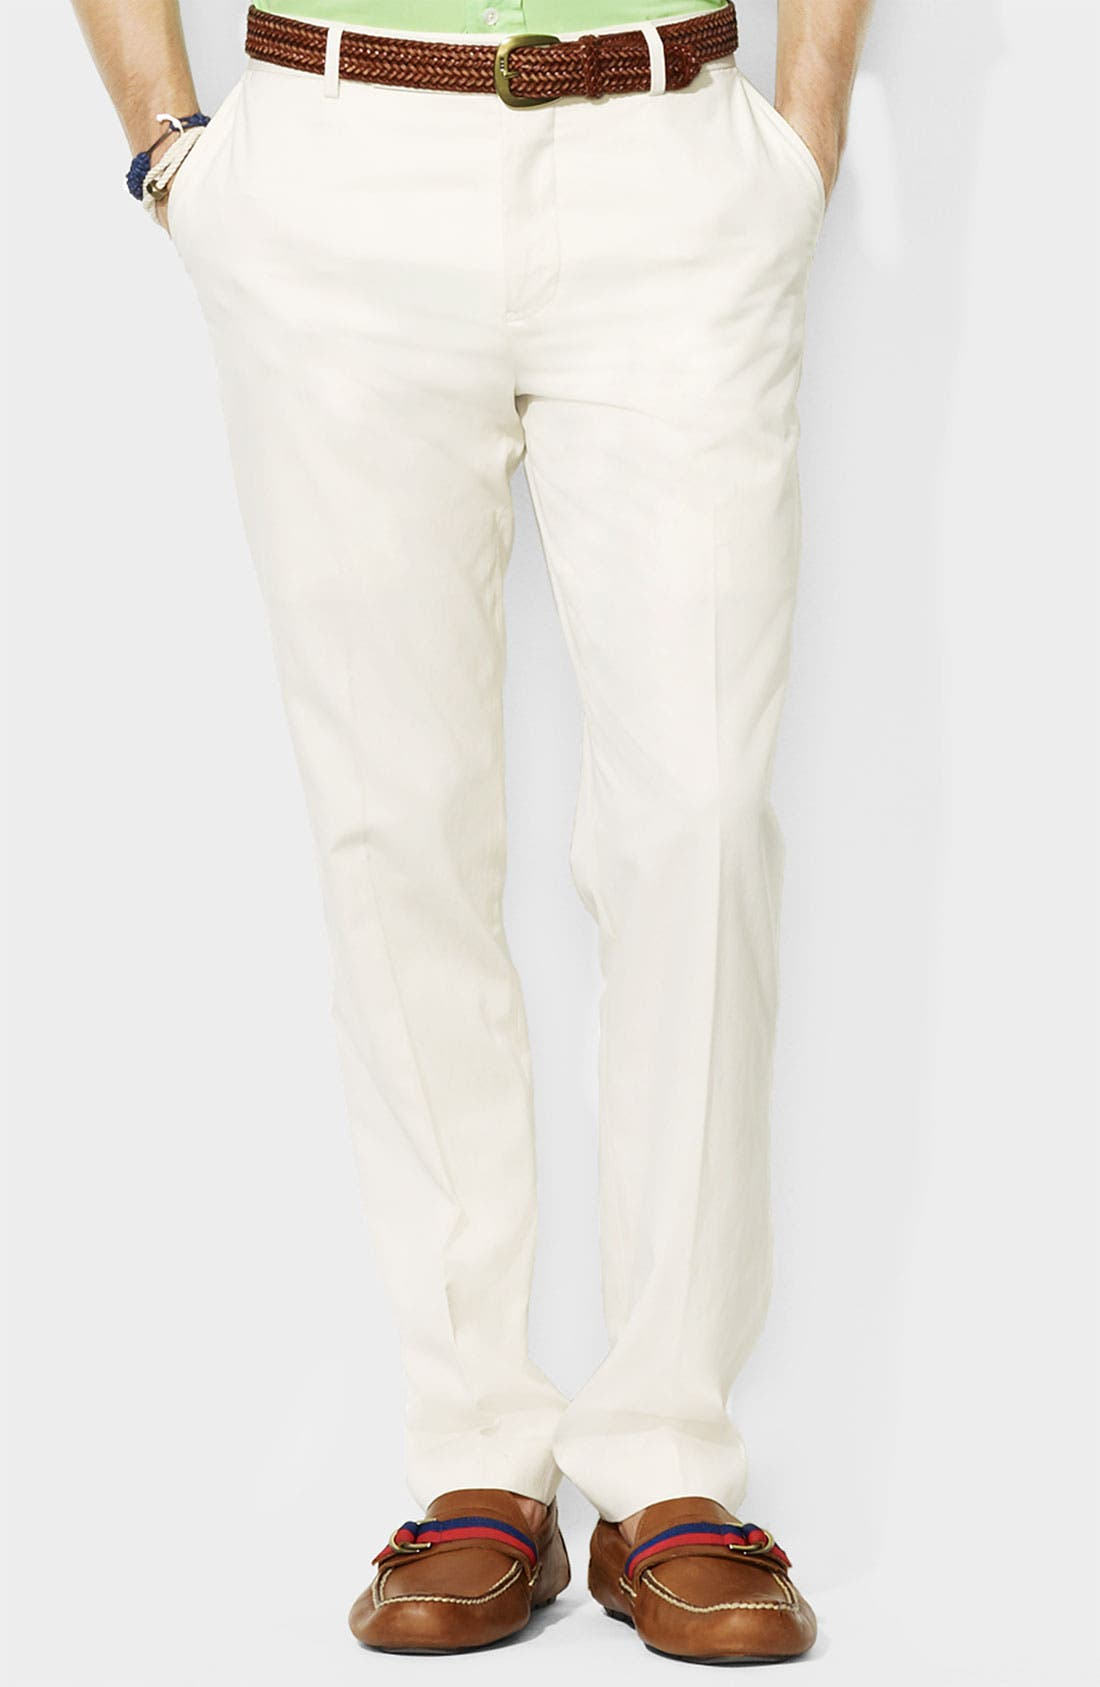 Alternate Image 1 Selected - Polo Ralph Lauren 'Preston' Silk & Cotton Pants